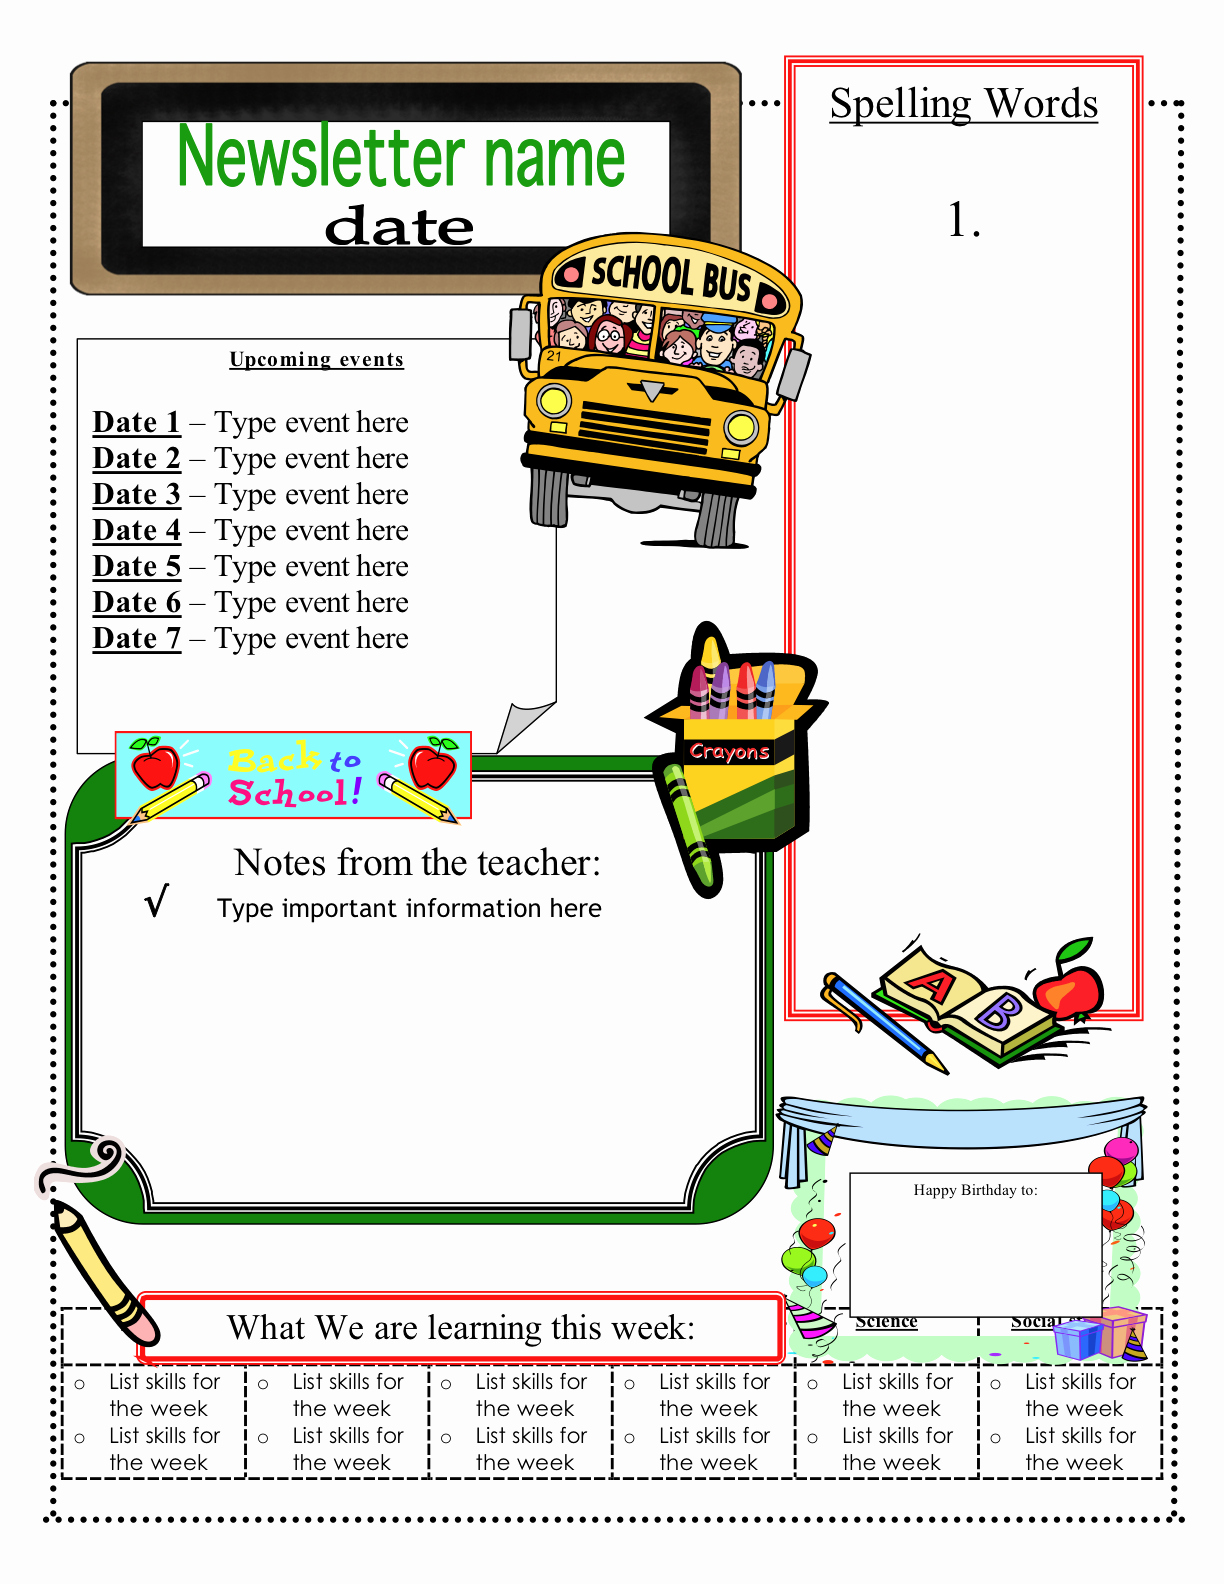 Free Downloadable Newsletter Template Awesome Free Classroom Newsletter Templates Check Out these Eight